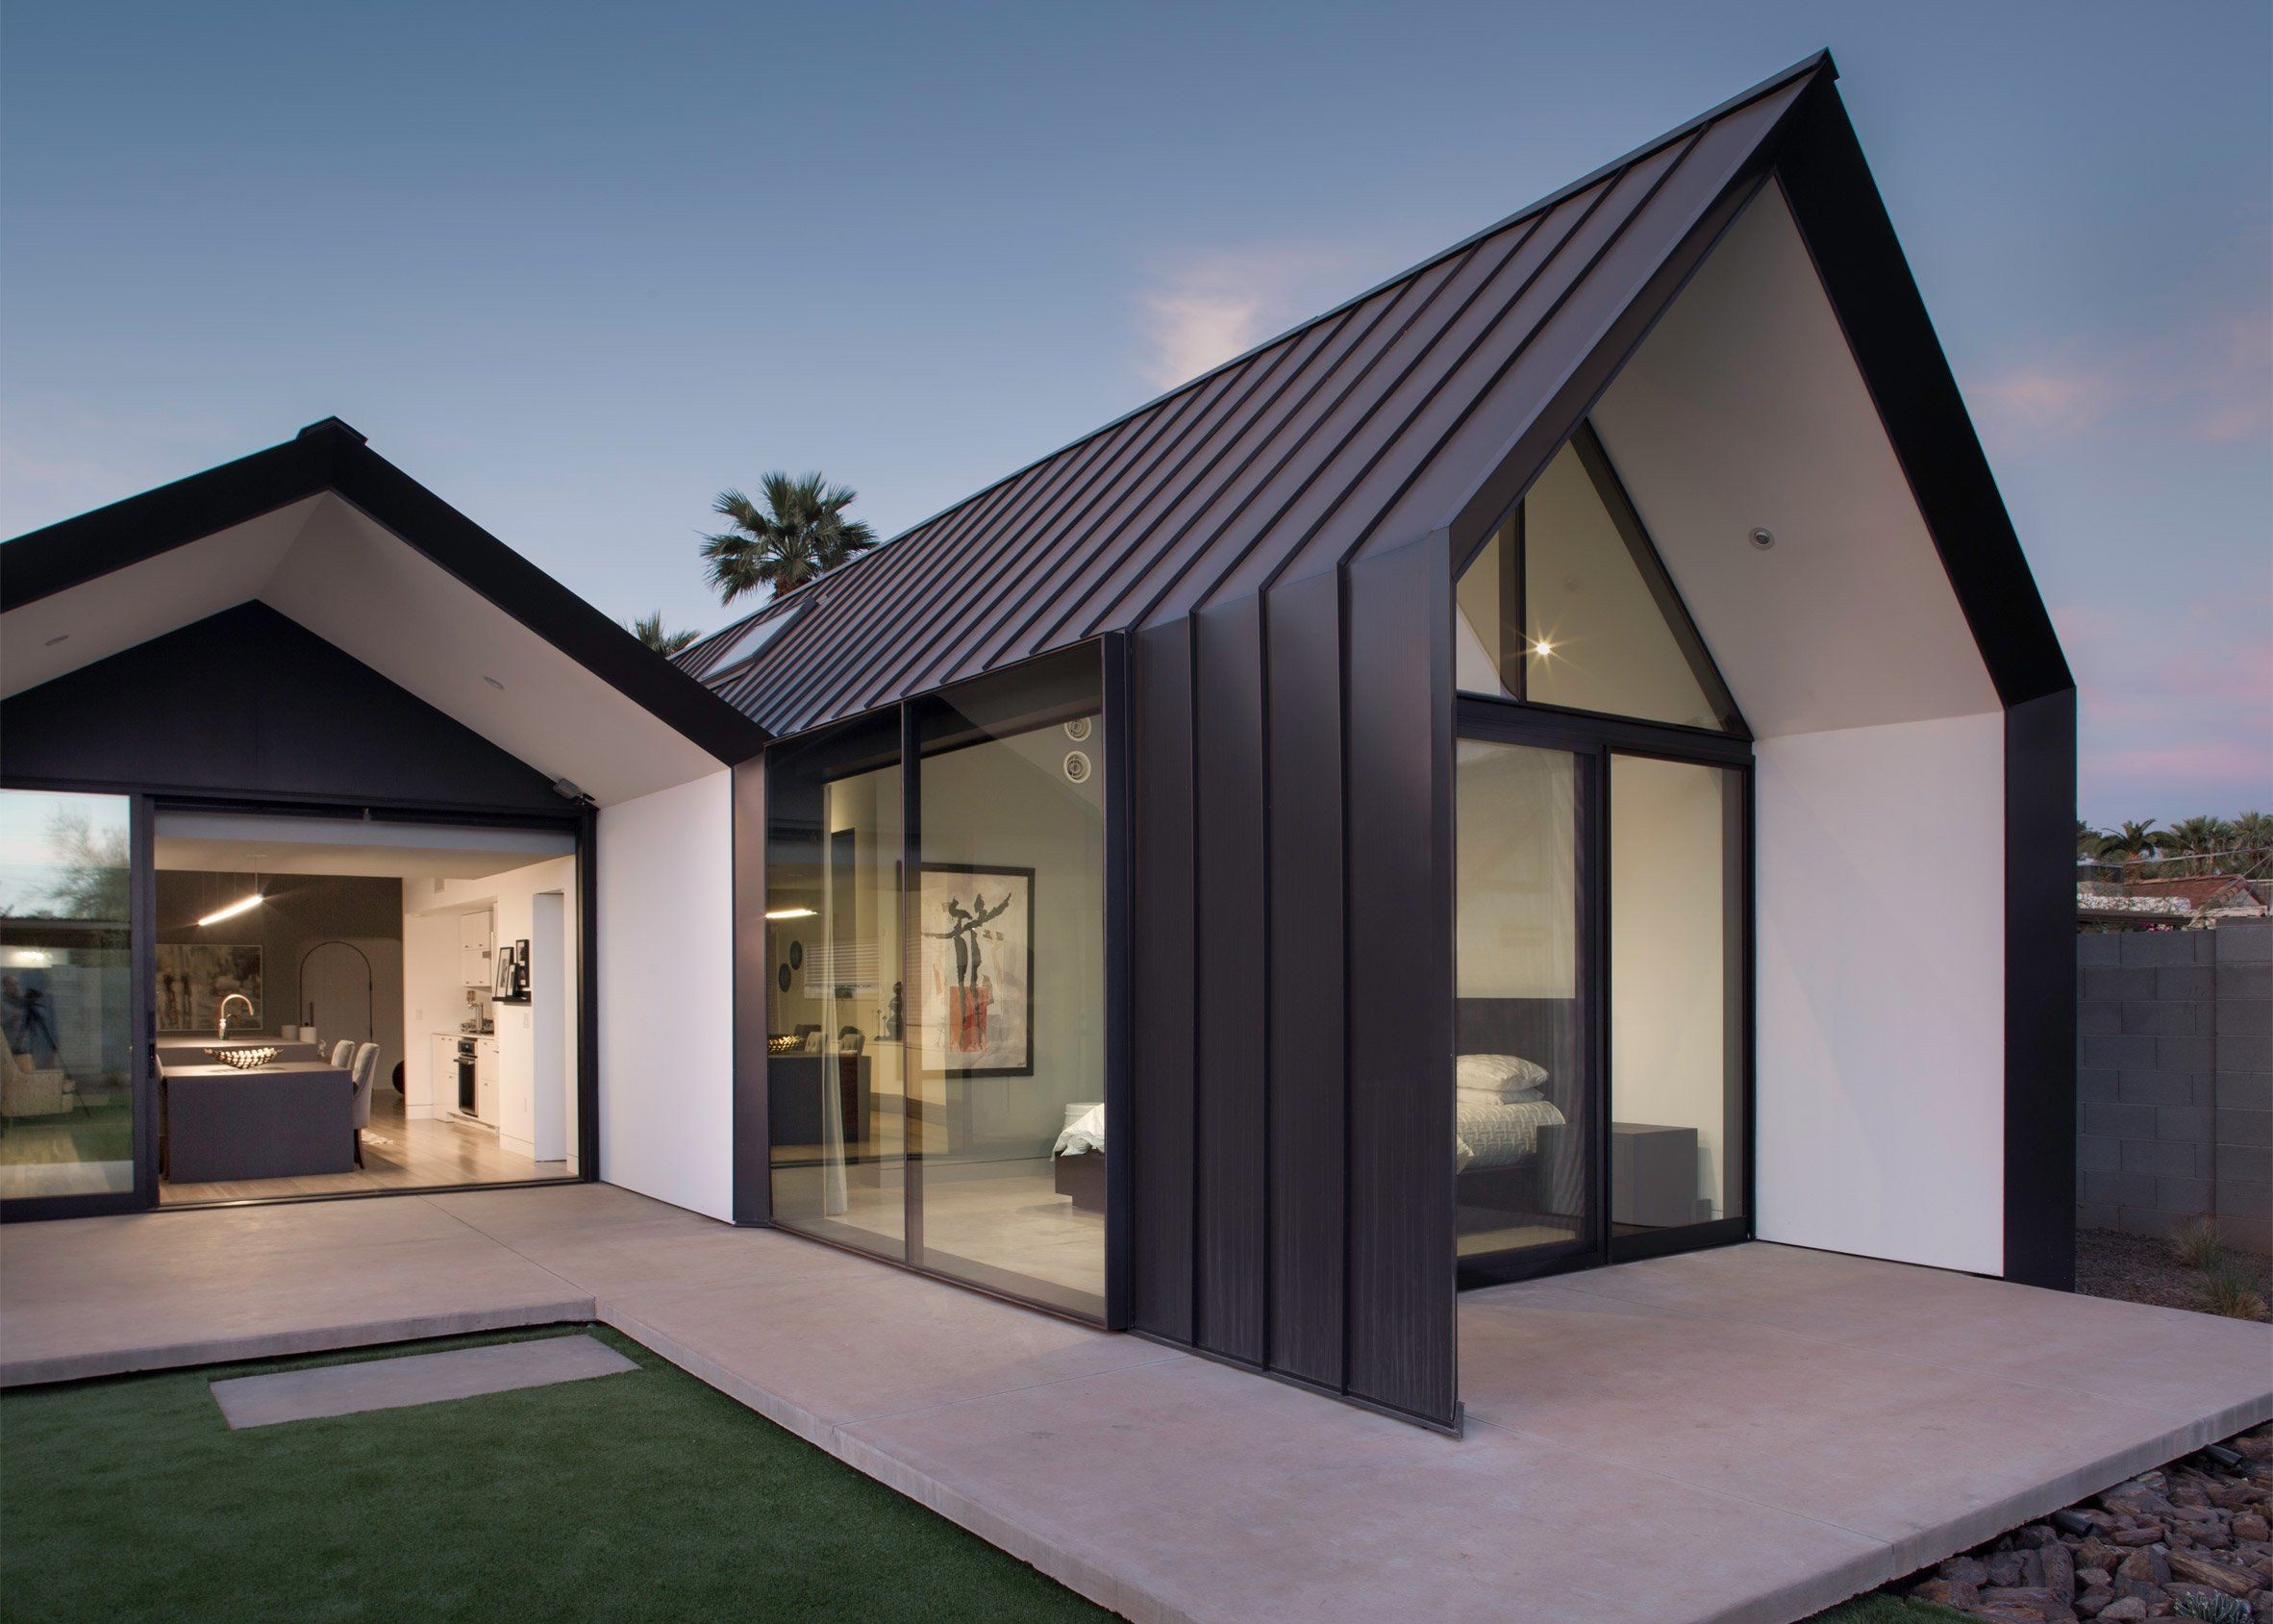 Us Firm Chen Suchart Studio Has Renovated And Expanded A 1930s Dwelling In Phoenix Arizona Adding Architecture House Modern House Design Modern Barn House